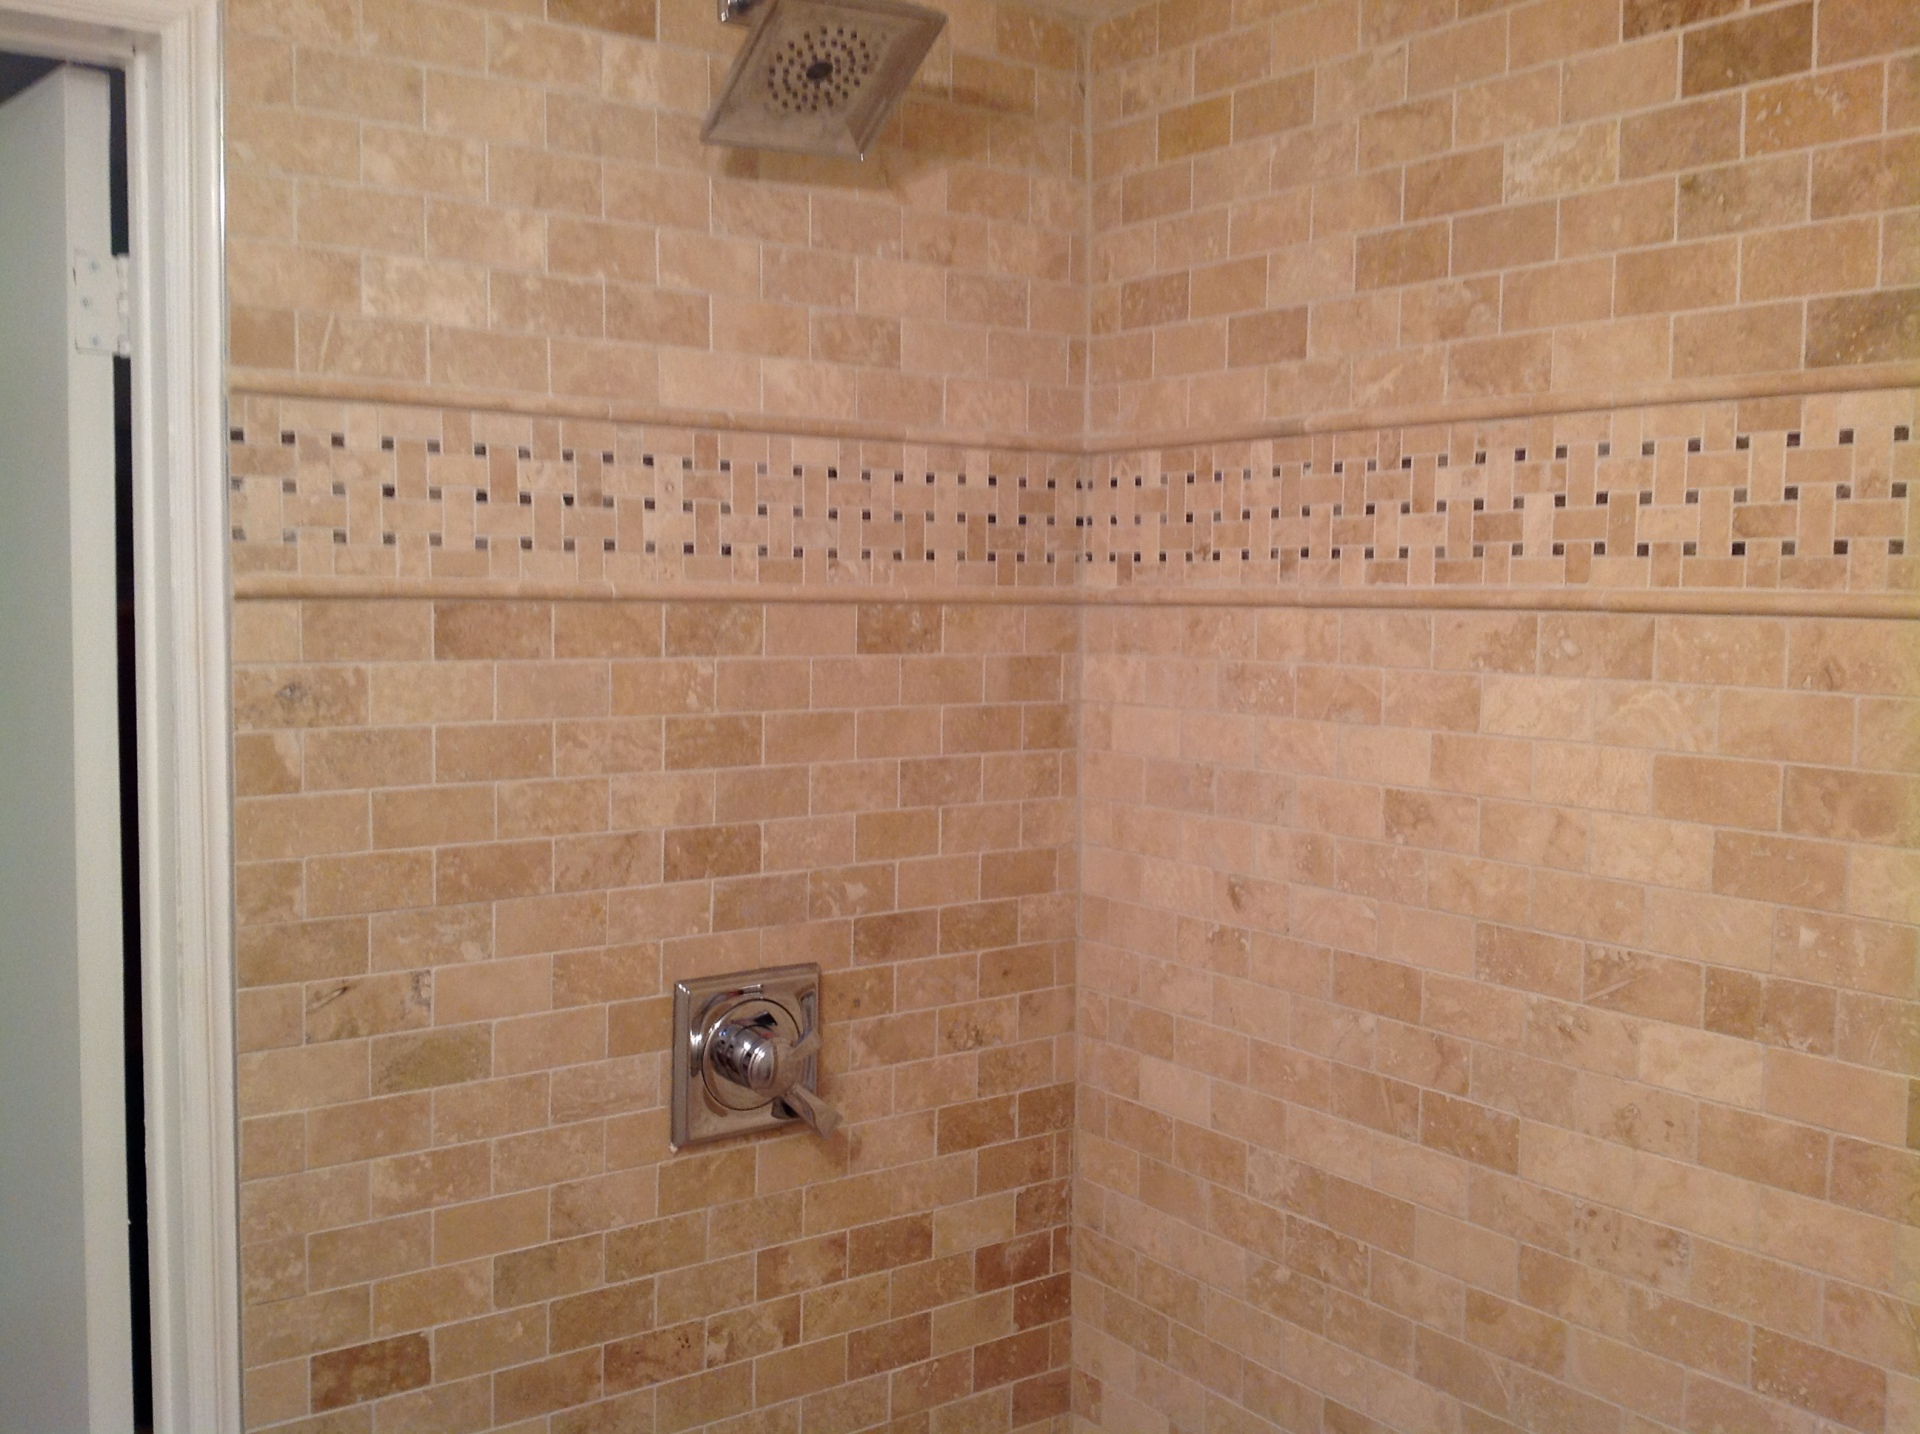 Porcelain tiled Mosaic Shower